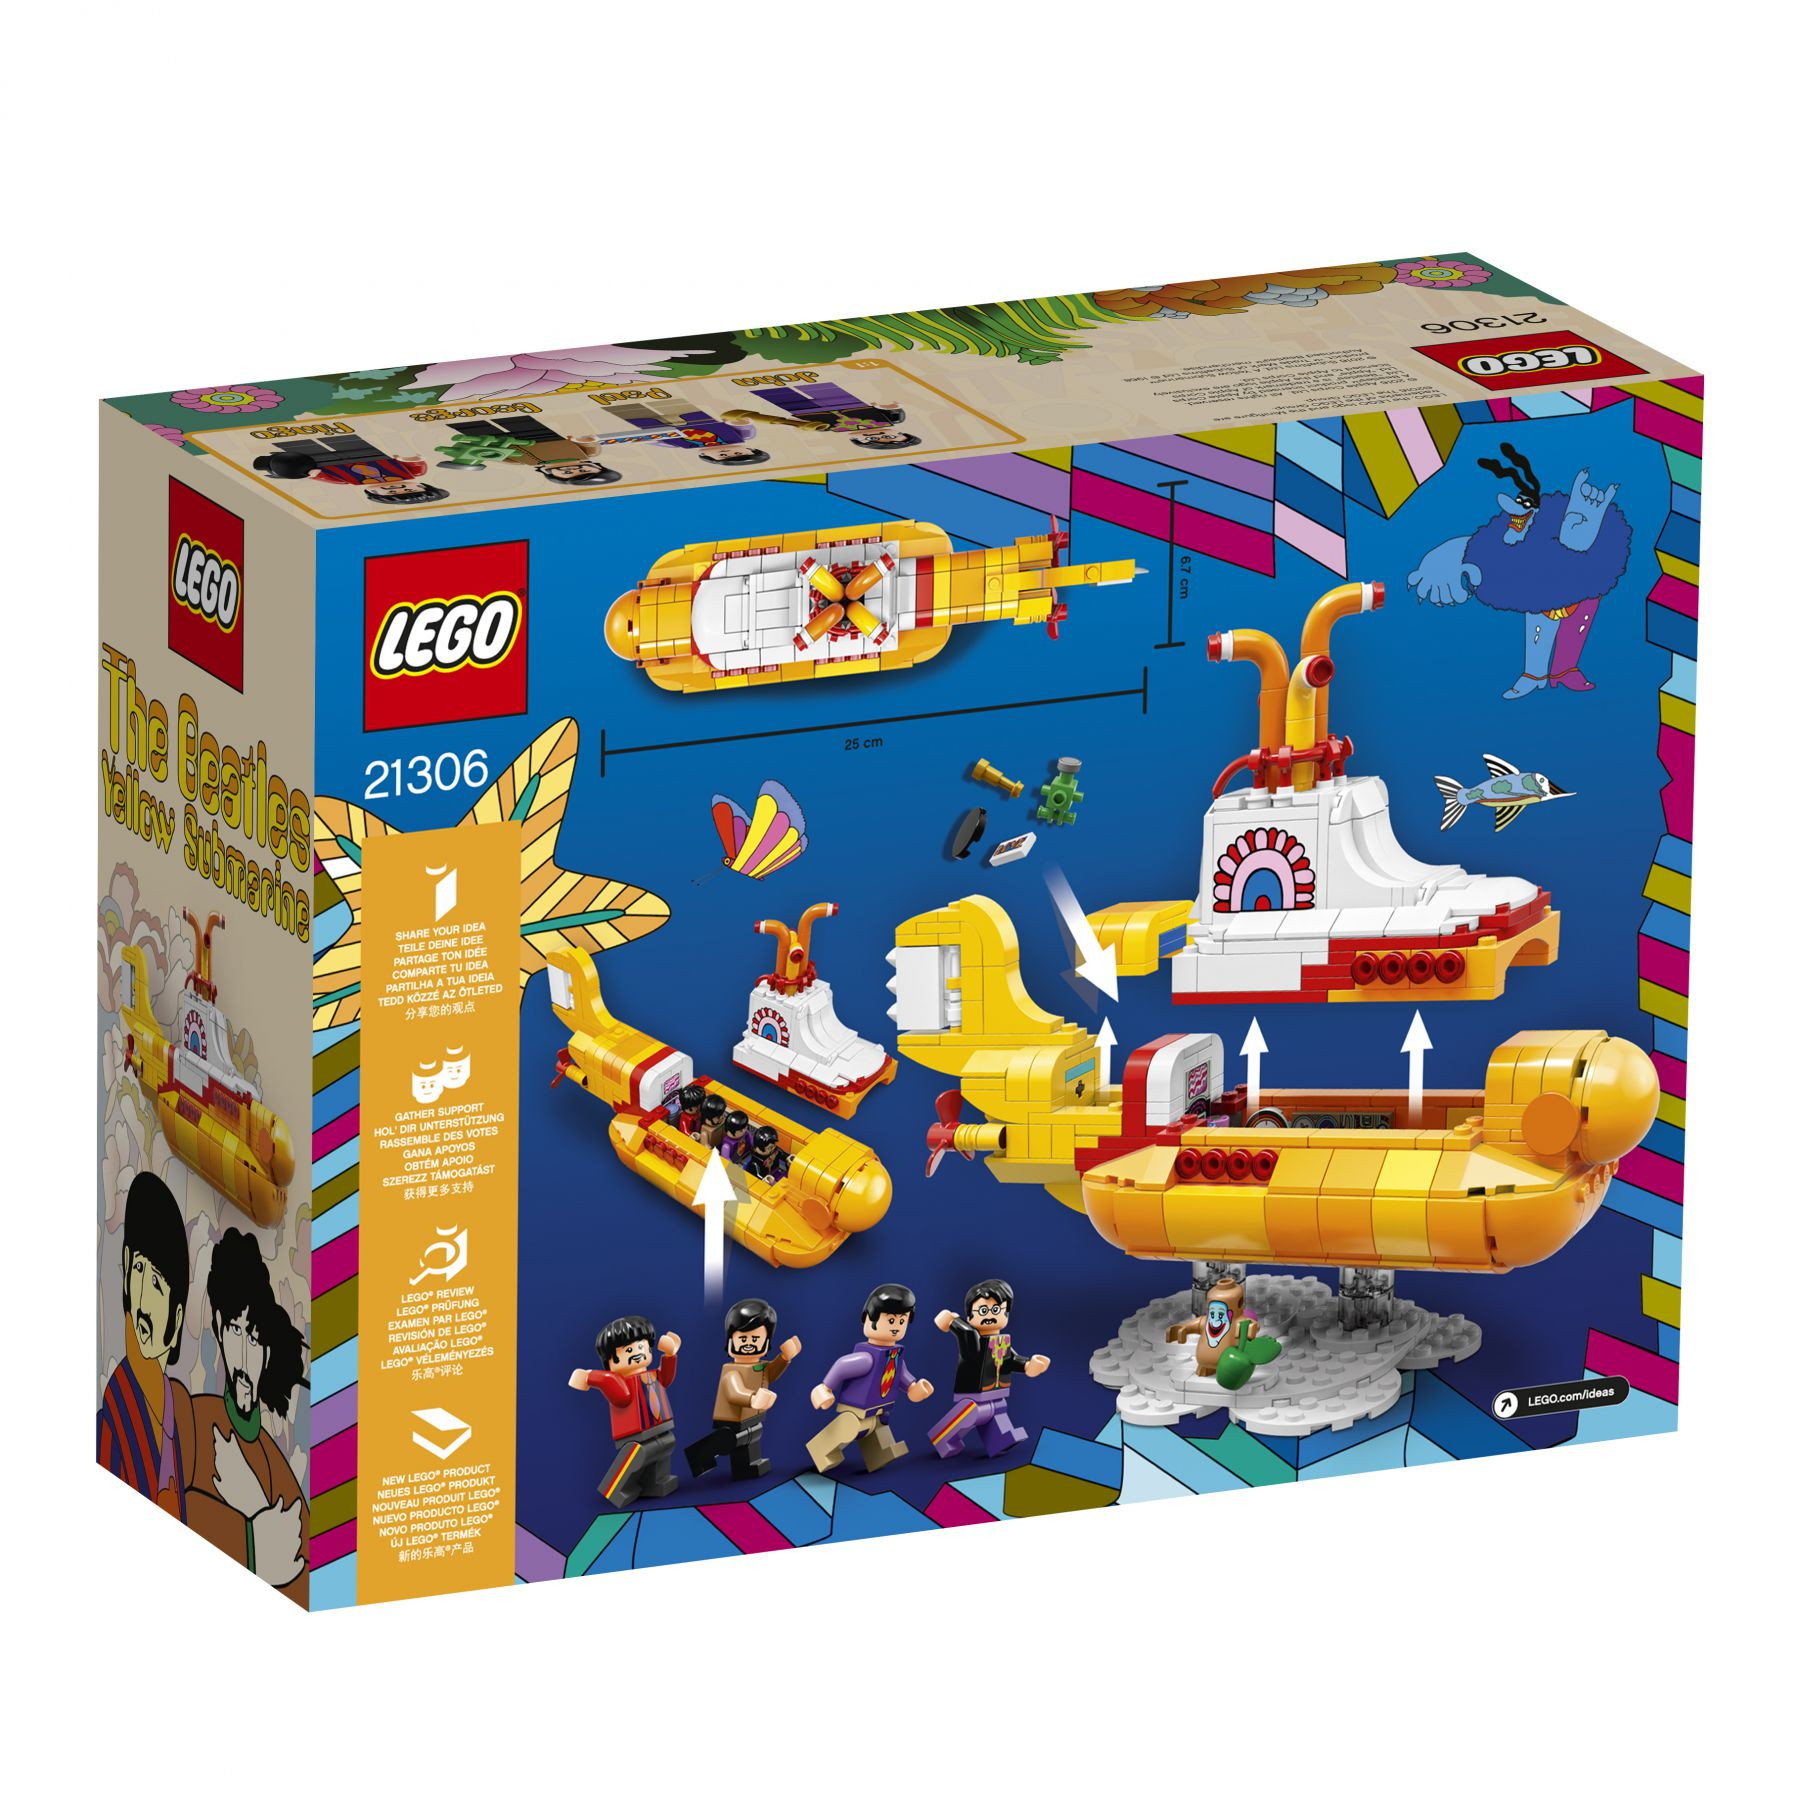 LEGO Ideas 21306 Yellow Submarine LEGO_21306_back.jpg